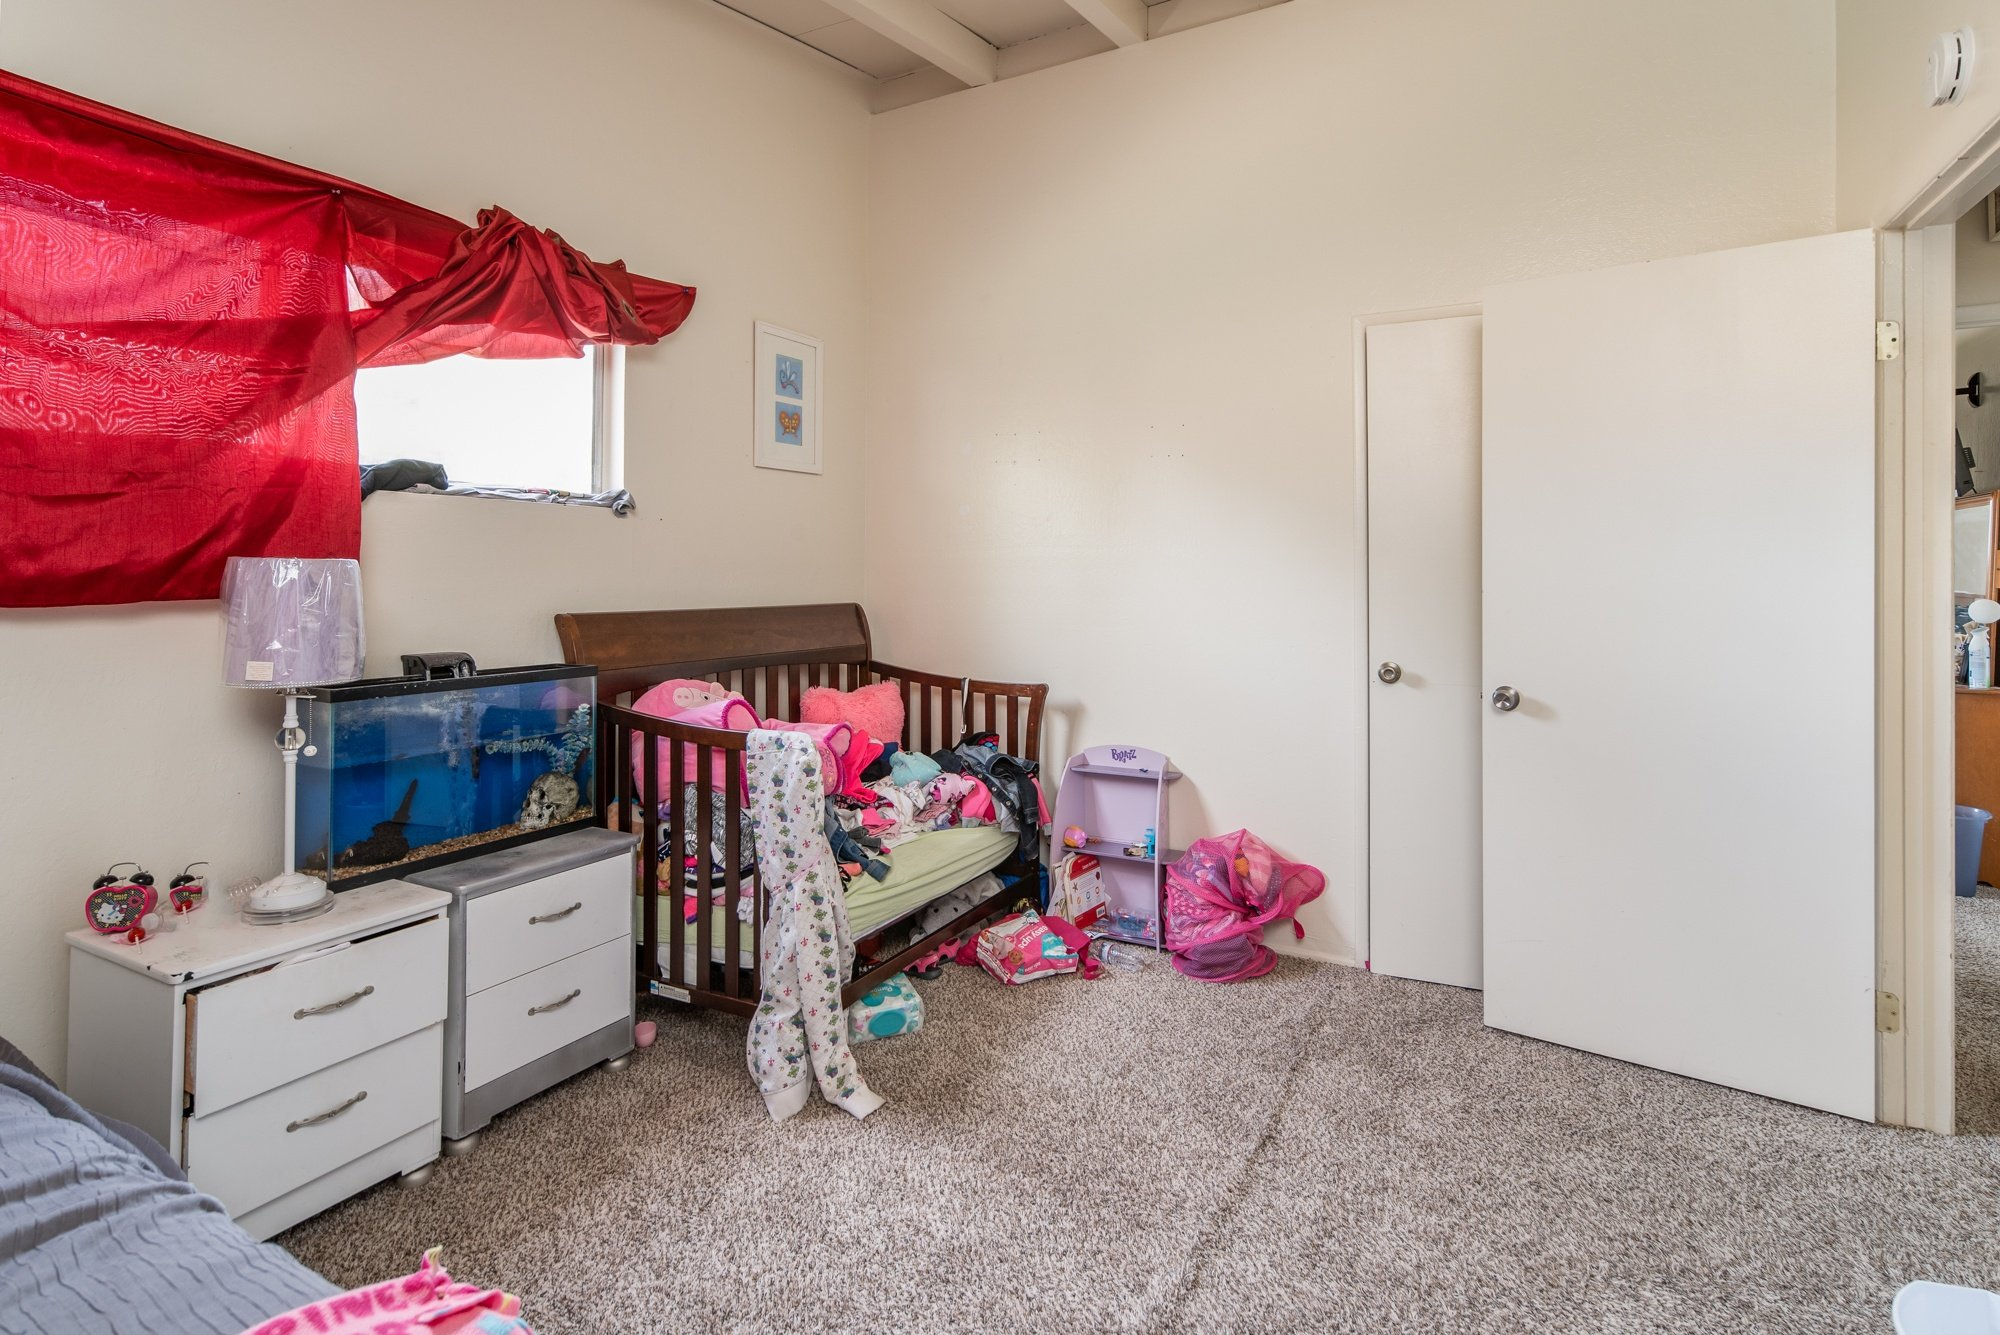 Palmdale, CA best real estate agent 557 - 559 West Avenue H 8, Lancaster, CA 93534 (kids bedroom 2)